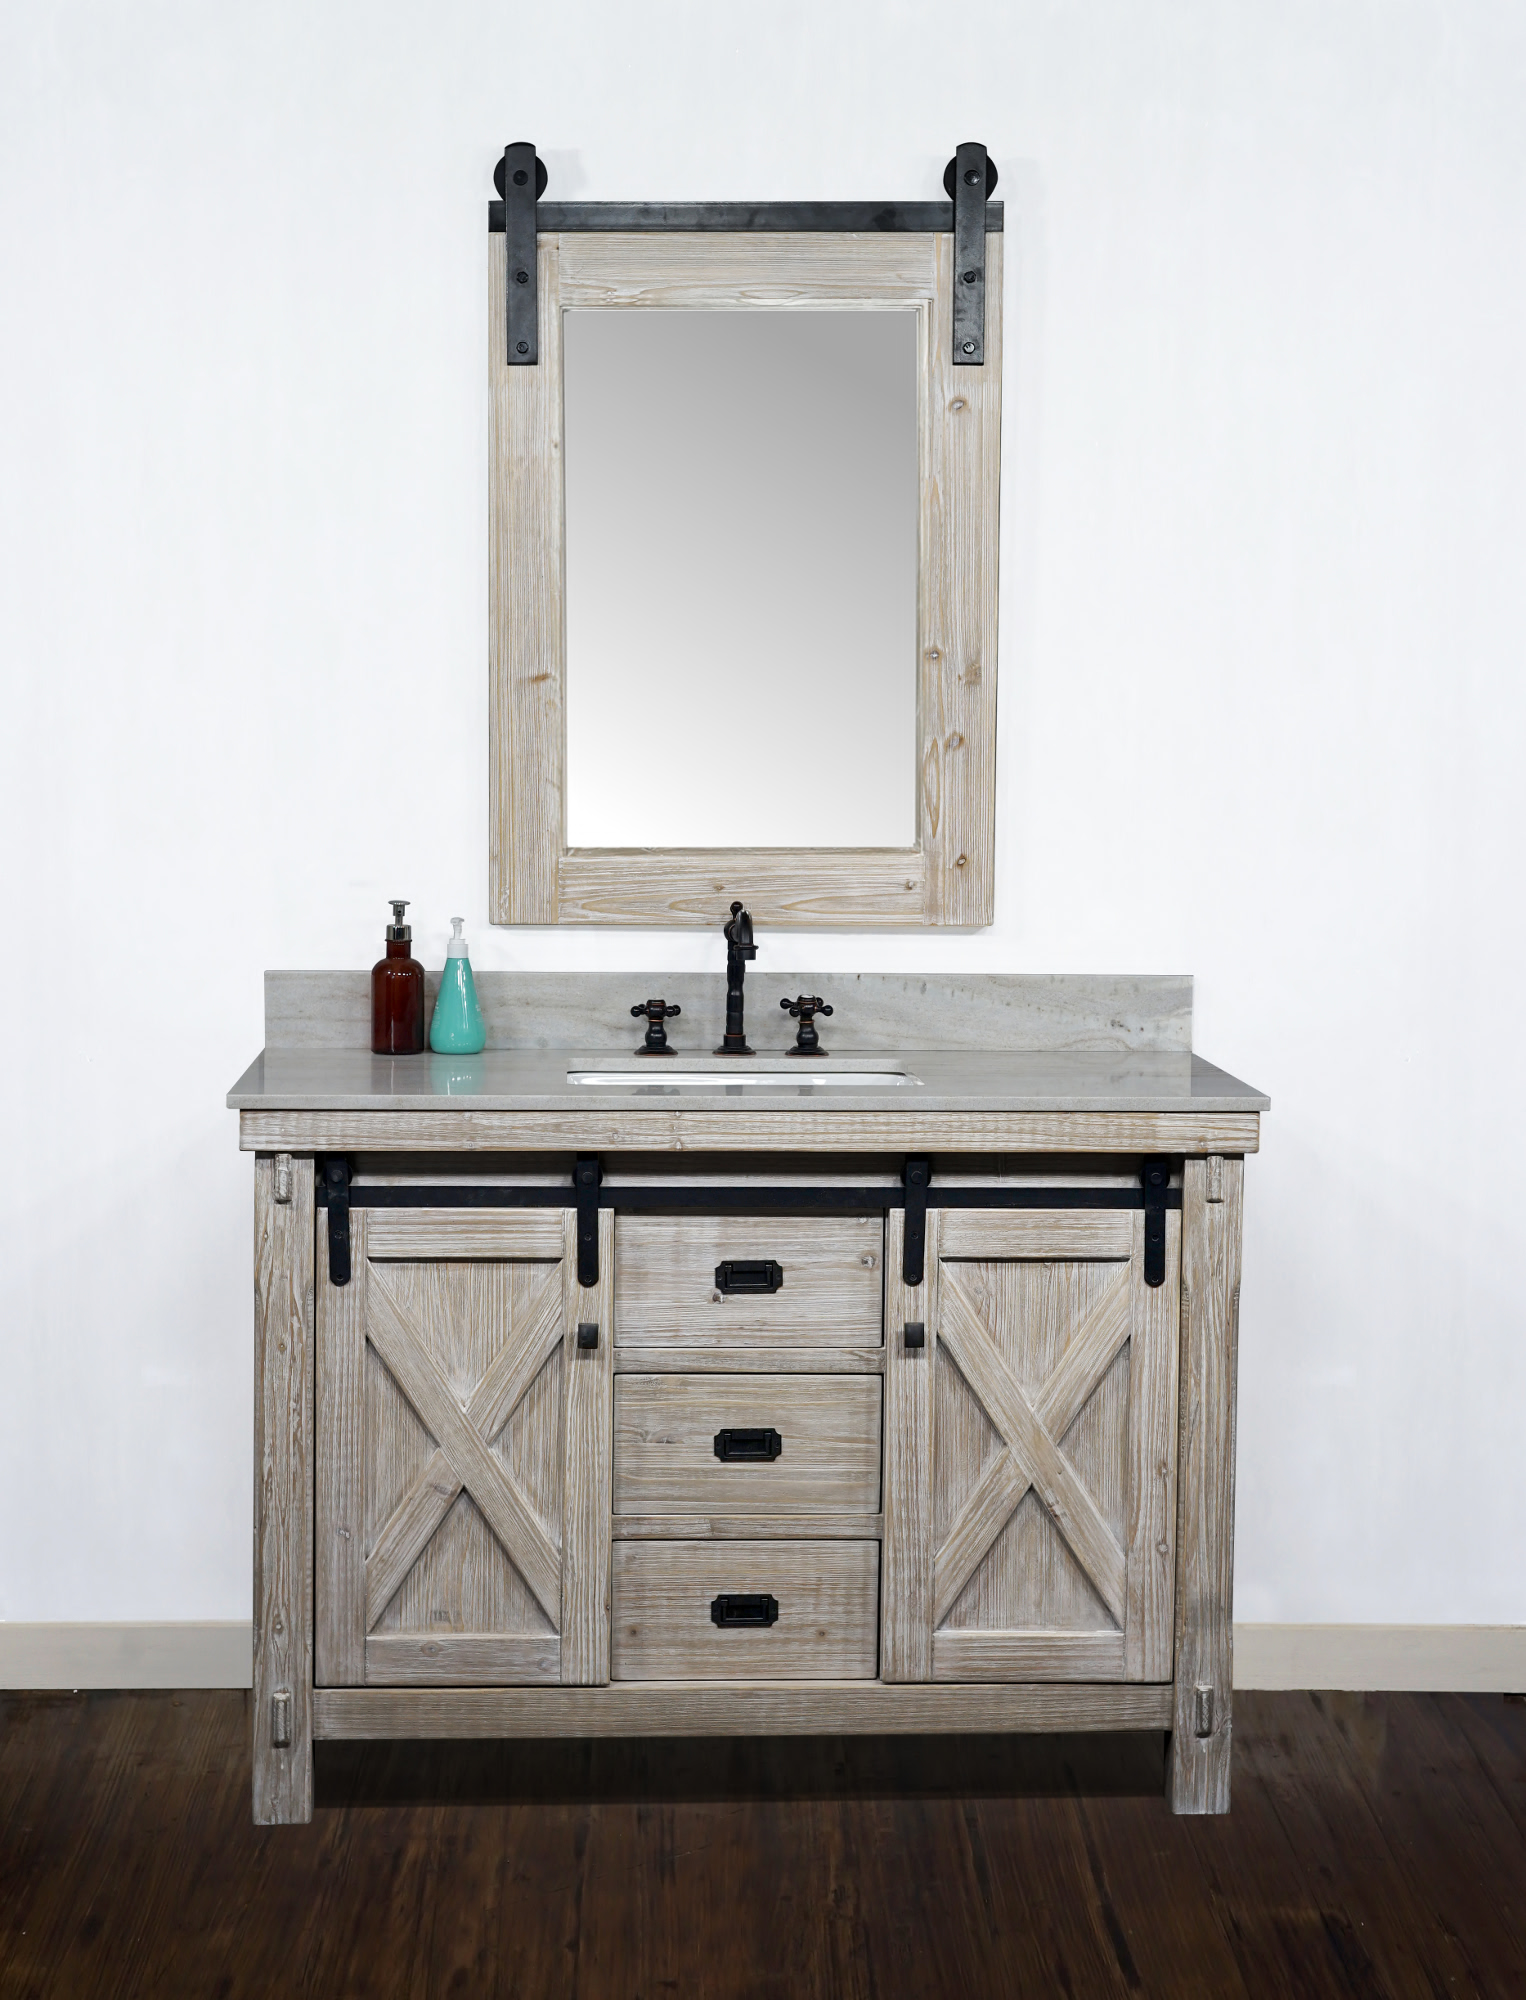 "48"" Rustic Solid Fir Barn Door Style Single Sink Vanity - No Faucet with Countertop Options"